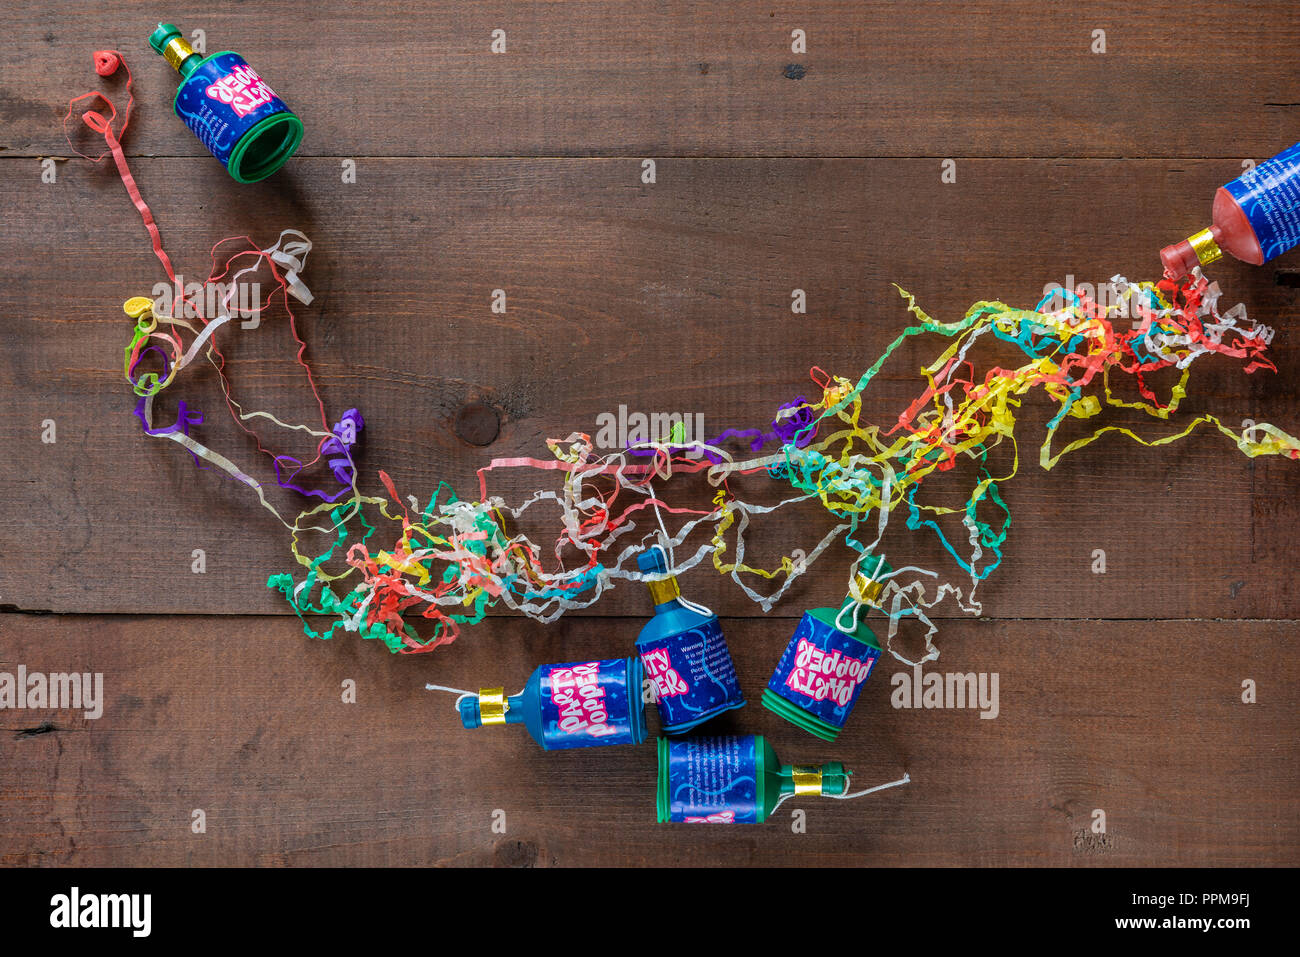 Exploded party poppers with their paper streamers on the floor. - Stock Image